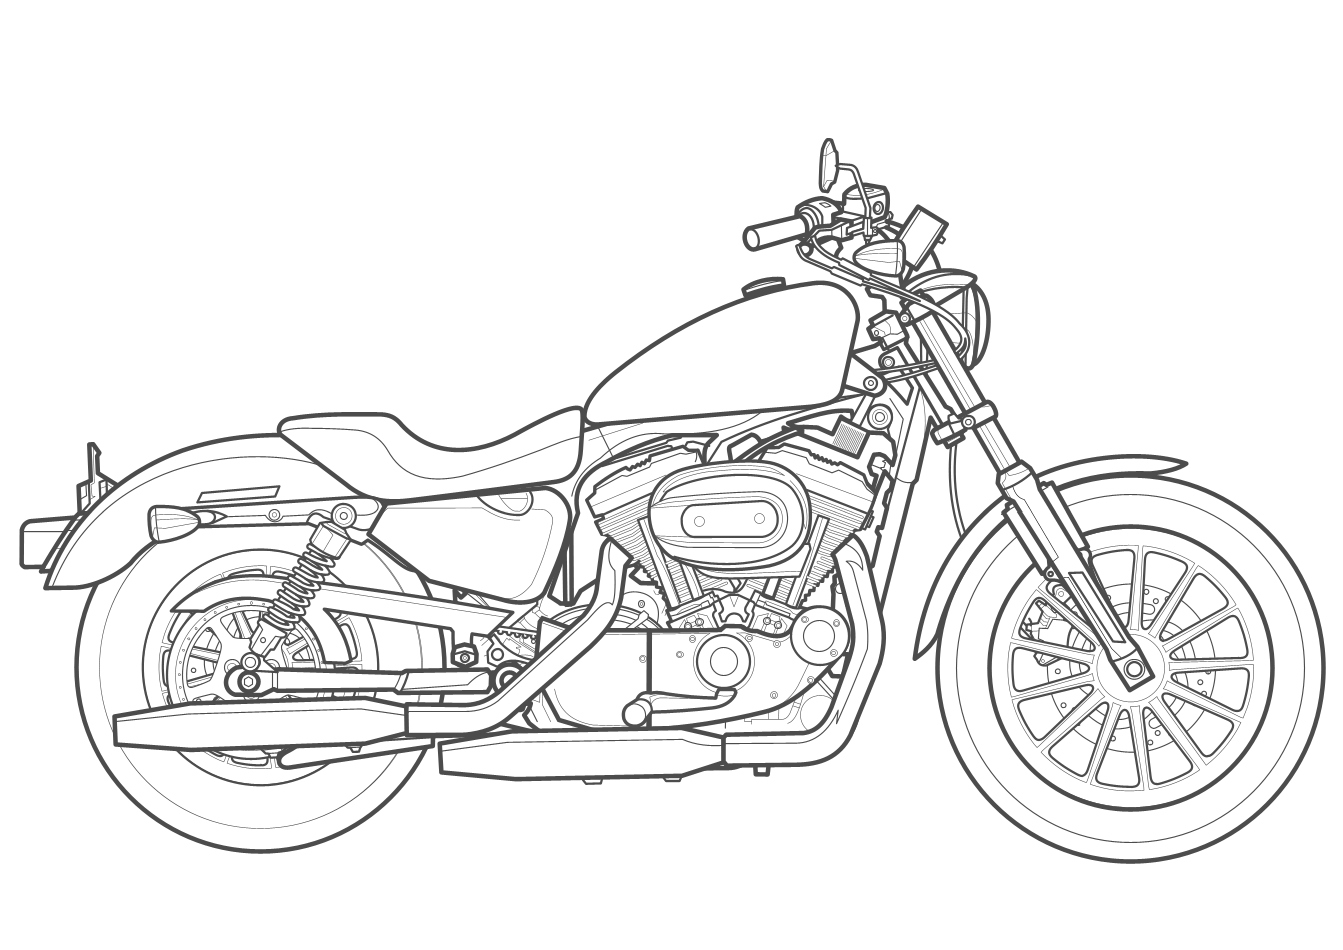 harley davidson motorcycle drawing at getdrawings com